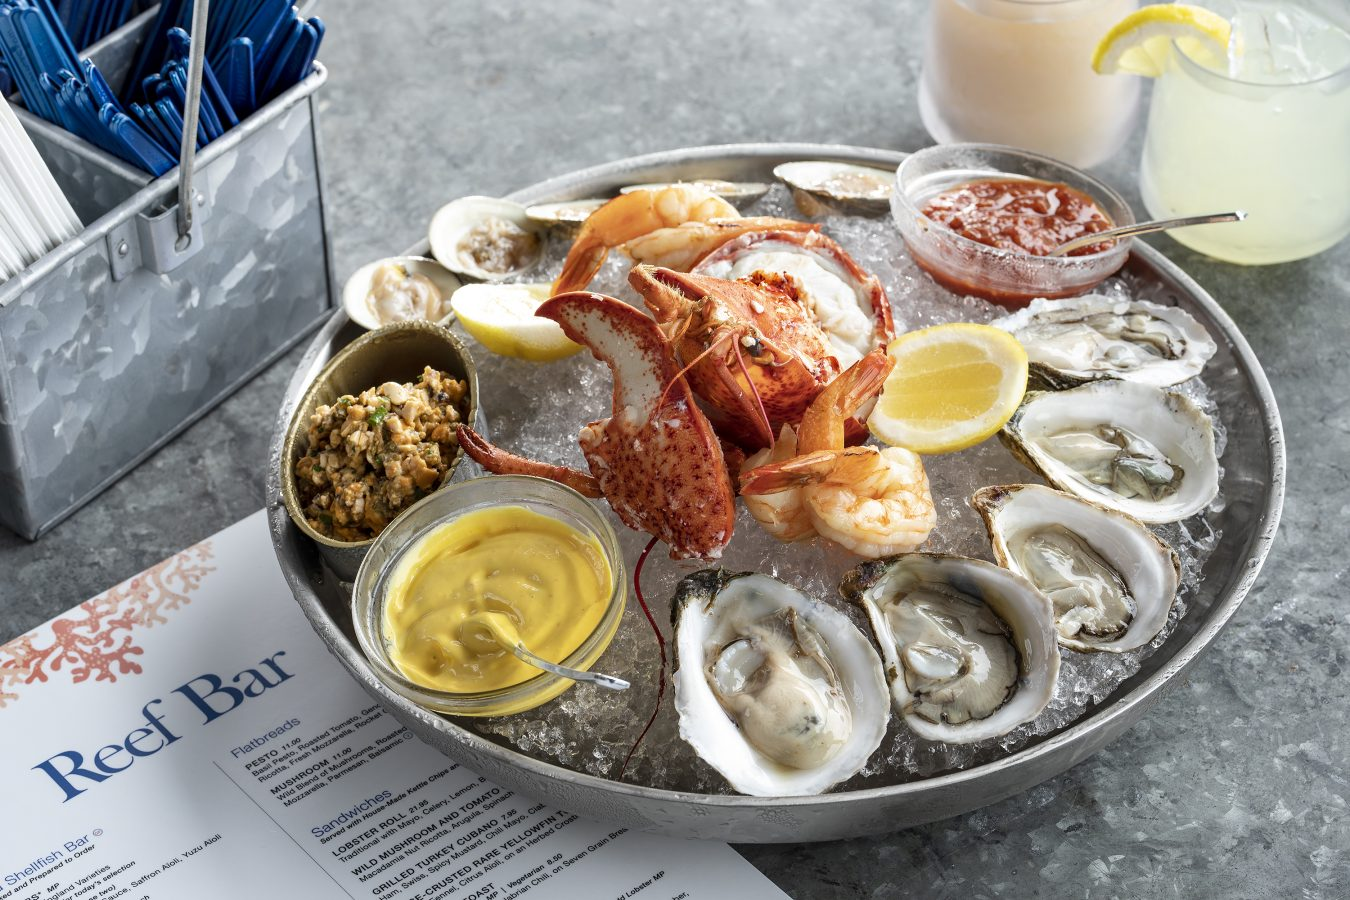 Lobster, shrimp, and oysters from the raw bar at the Reef Bar